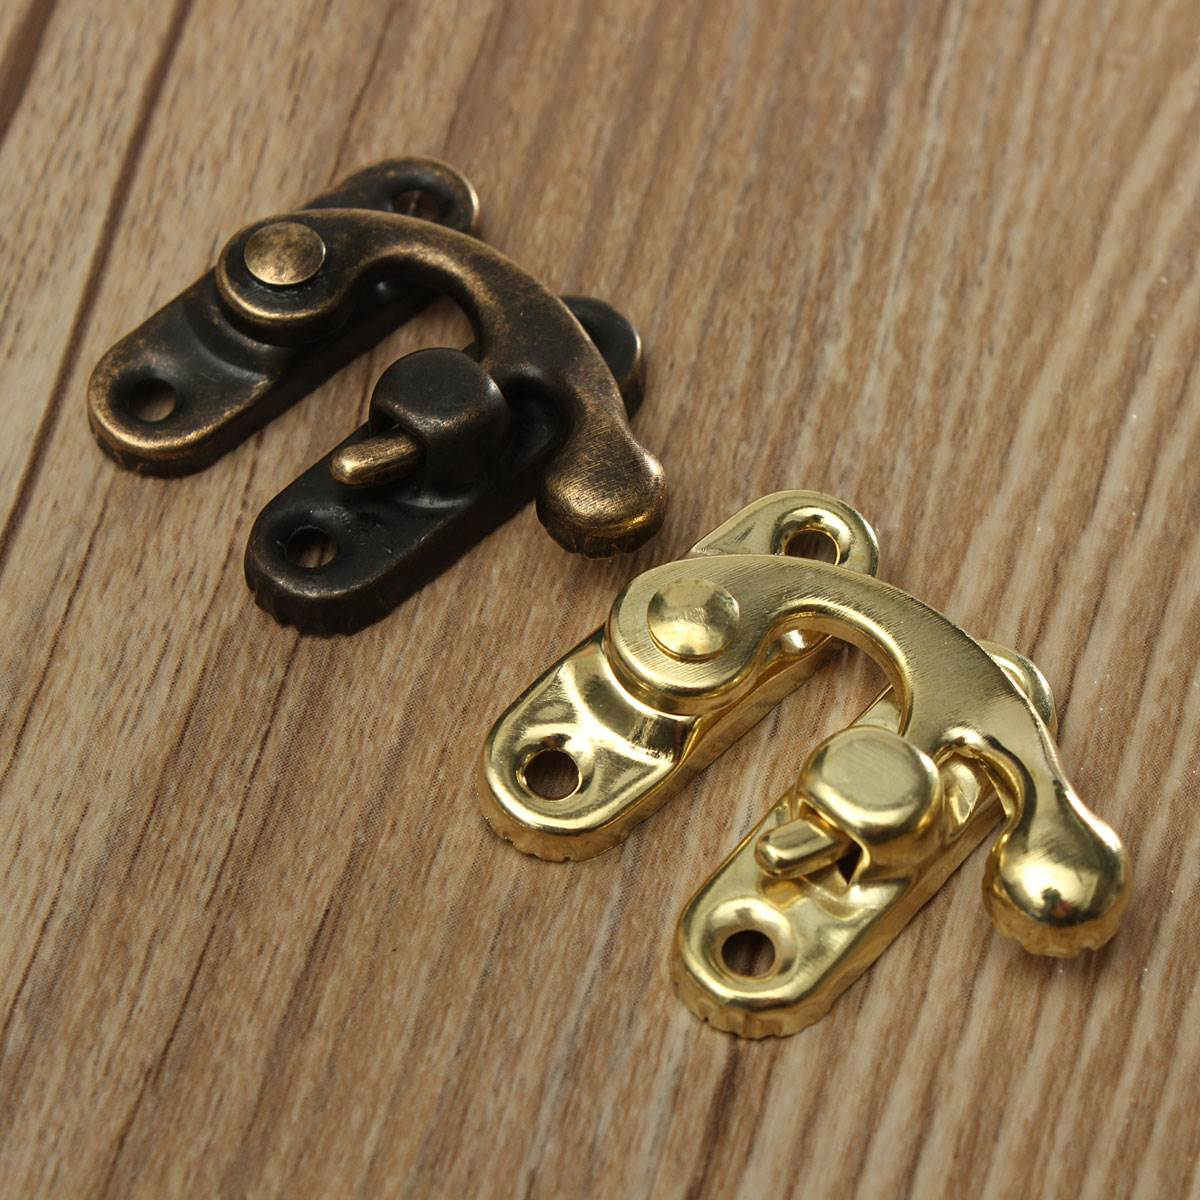 Top Quality 12pcs Vintage Antique Metal Lock Horn Curved Buckle Gift